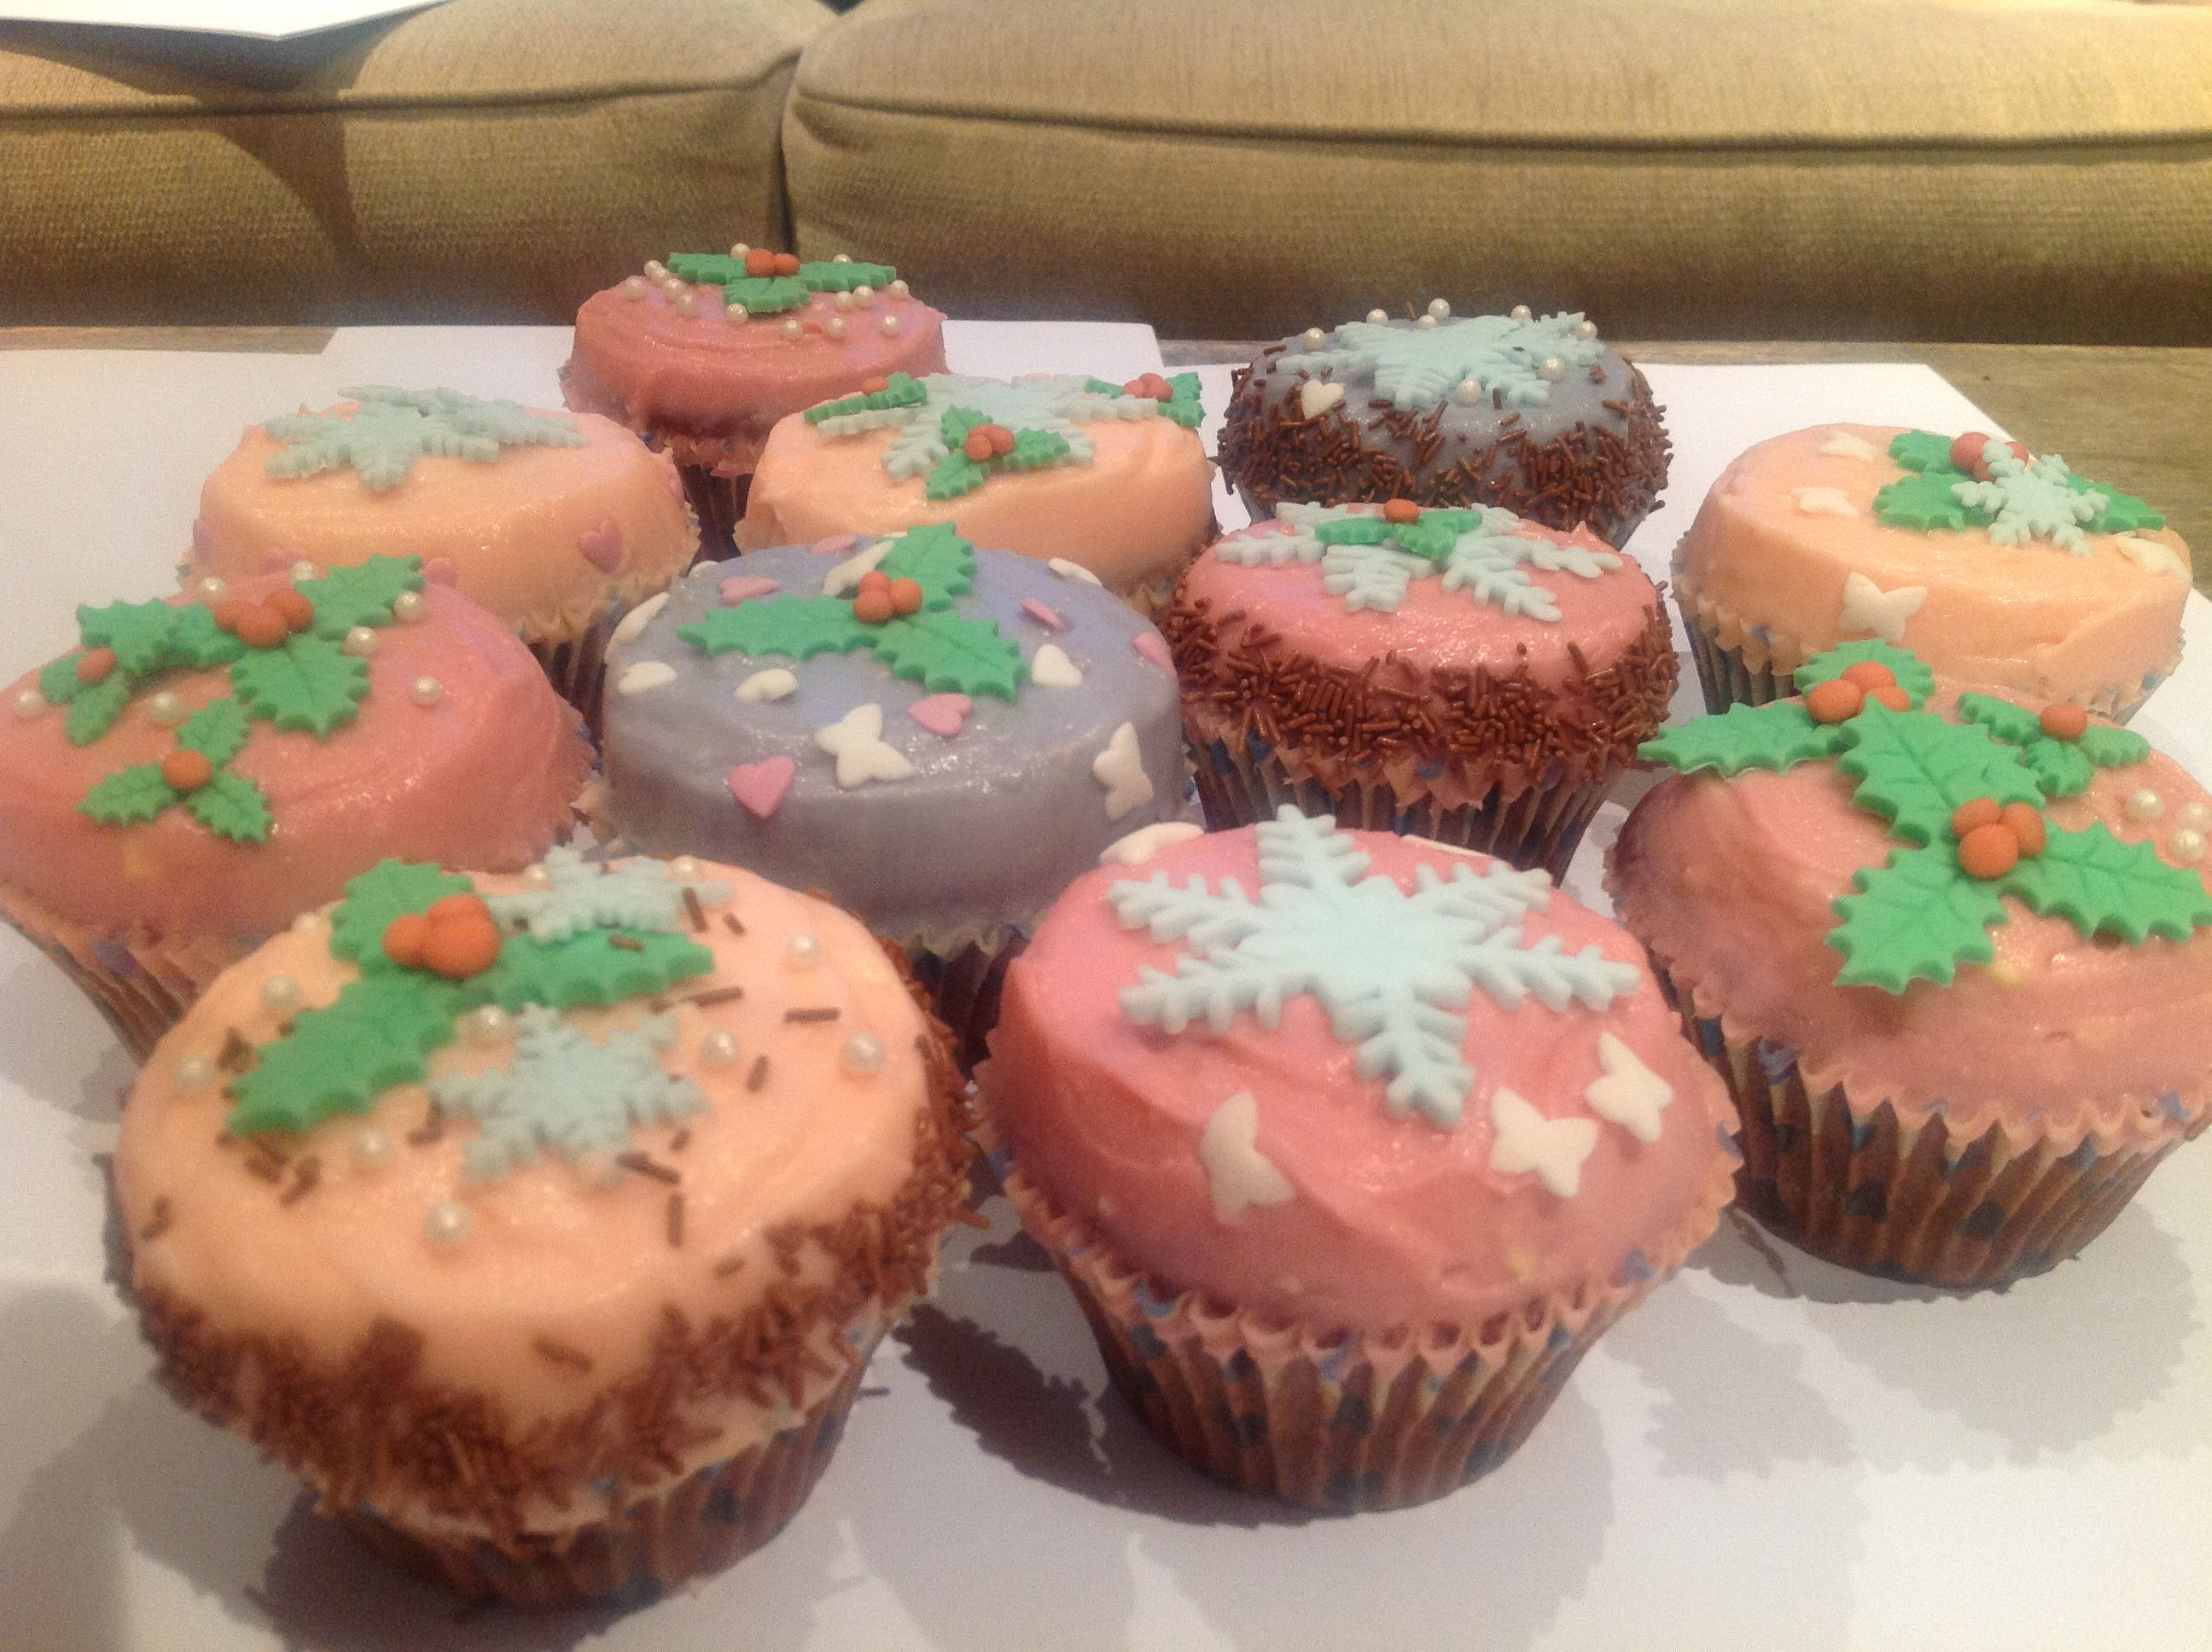 Cupcakes at Christmas time.